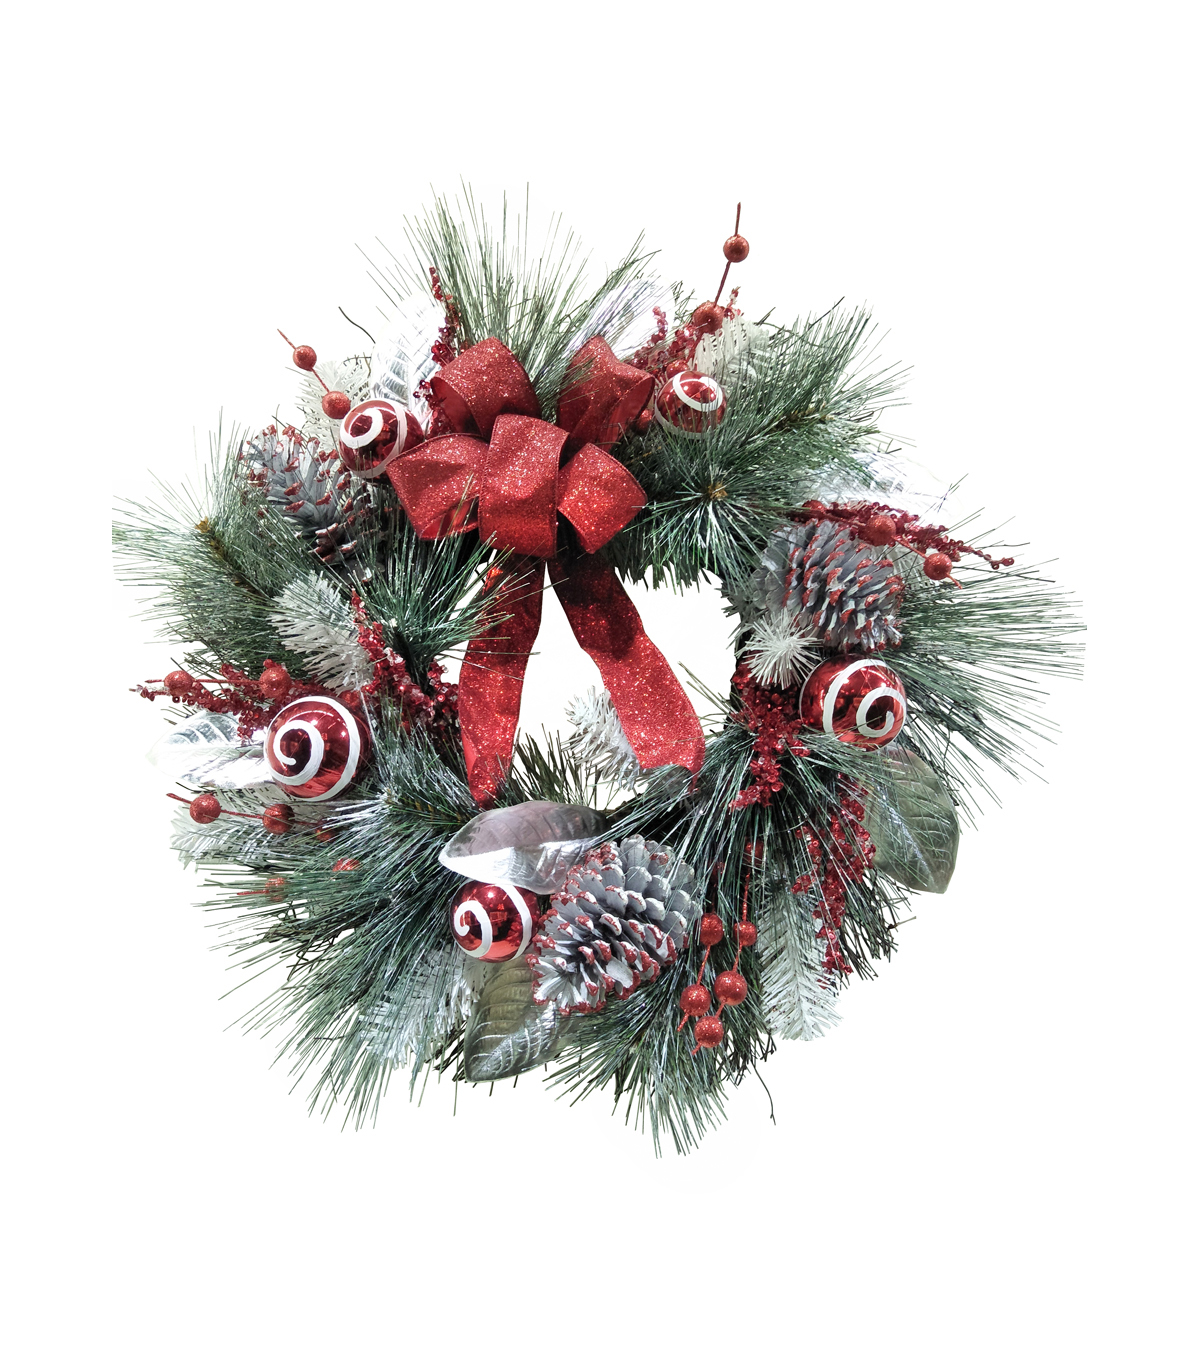 Blooming Holiday Christmas Ornament & Pine Wreath with Bow-Red & White